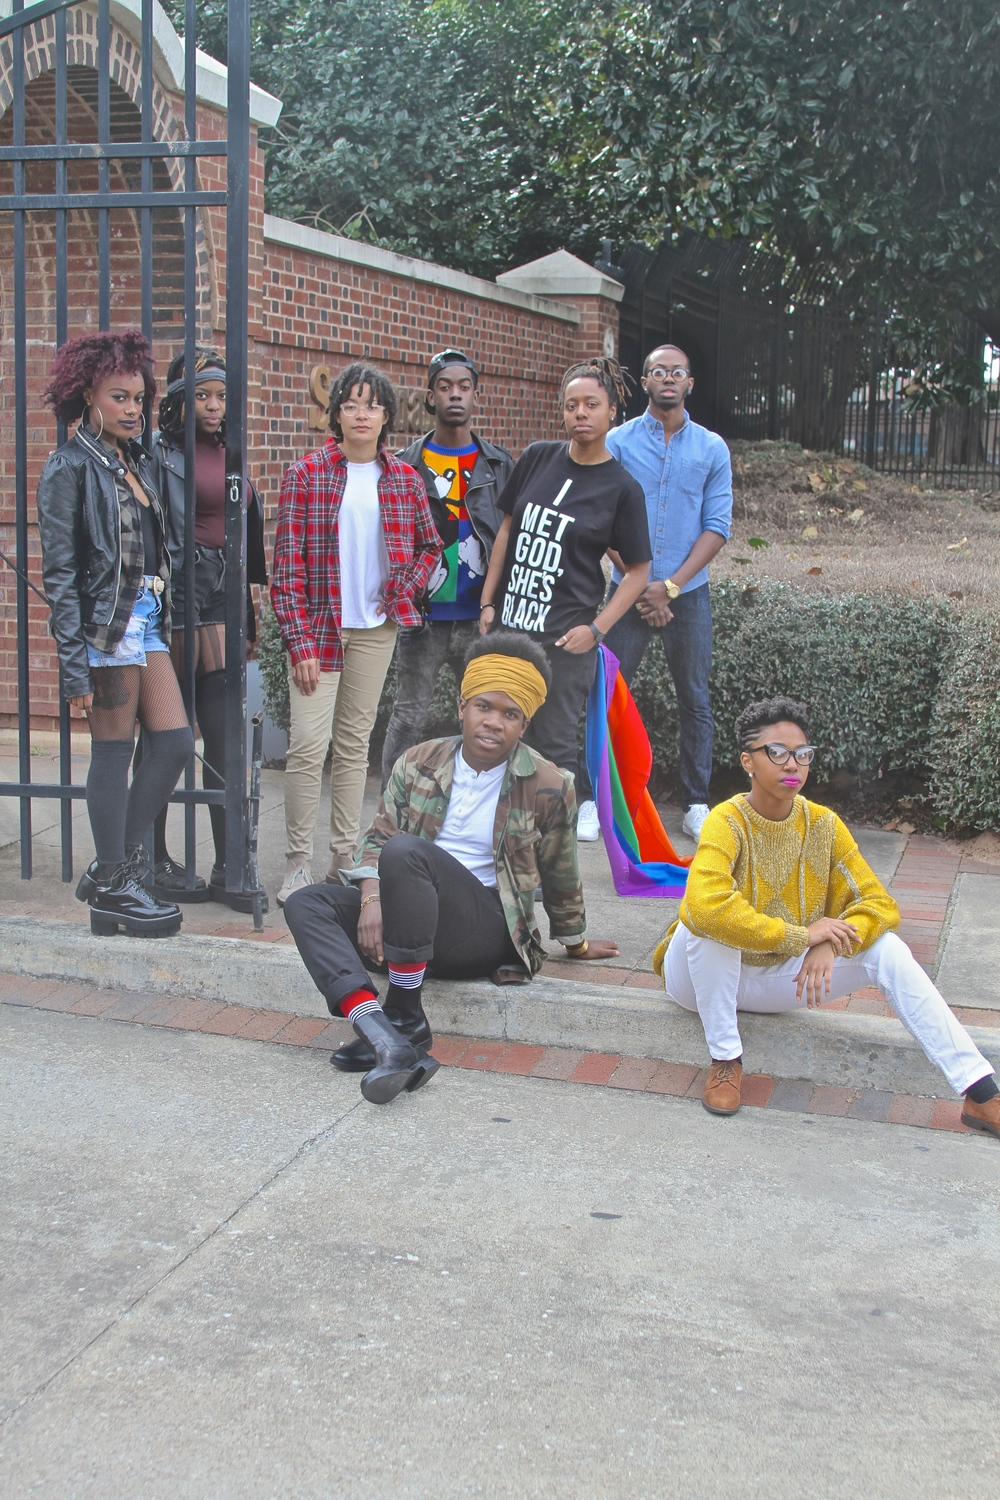 "In 2010, Morehouse College Safe Space (MCSS) organized and made history with the celebration of its very first P.R.I.D.E (Progress, Restoration, Identity, Dignity and Empowerment) Week. Students of the GBT community/Queer diaspora were given a voice and space to affirm their identities and the opportunity to take PRIDE in who they are as a people holistically. Campus saw a variety of events including various (LGBT) movie screenings, HIV testing, an Equality Ball, the return of LGBT Christian organization Soulforce's Equality Ride, a panel discussion featuring B. Scott and campus-wide meetings about sexuality, diversity, and gender expression. In the same spirit, Spelman's Afrekete has also organized pride weeks   and numerous events on their campus as well. In 2009, they dedicated their first annual pride week as a radical response to Morehouse's New Appropriate Attire Policy; The theme of week was ""A House Divided Cannot Stand."" One of the most popular events to date—which closed the week and gained lots of support—was The Appropriate Dress Attire WERK Fashion Show co-sponsored with MCSS. The show interrogated normative notions of gender expression while fiercely pushing back against gender policing present in the Atlanta University Center featuring students in—and out of—drag, poetry, music, and lots of fun.  Following in the footsteps of both organizations'  fierce predecessors Je-Shawna C. Wholley, Michael Brewer, Daniel Edwards, and Kevin Webb, the theme/focus of the week was: ""We Are Coming Home: Claiming Space, Redefining It, & Celebrating Wholeness.""   The goals for the celebratory week were to be quite intentional and bold, but simple: to celebrate the fearless, creative, and resilient spirits of LGBTQ folks of color; to promote community and alliance building amongst our student body; and to celebrate, affirm, and take pride in our identities—culturally, spiritually, and holistically."